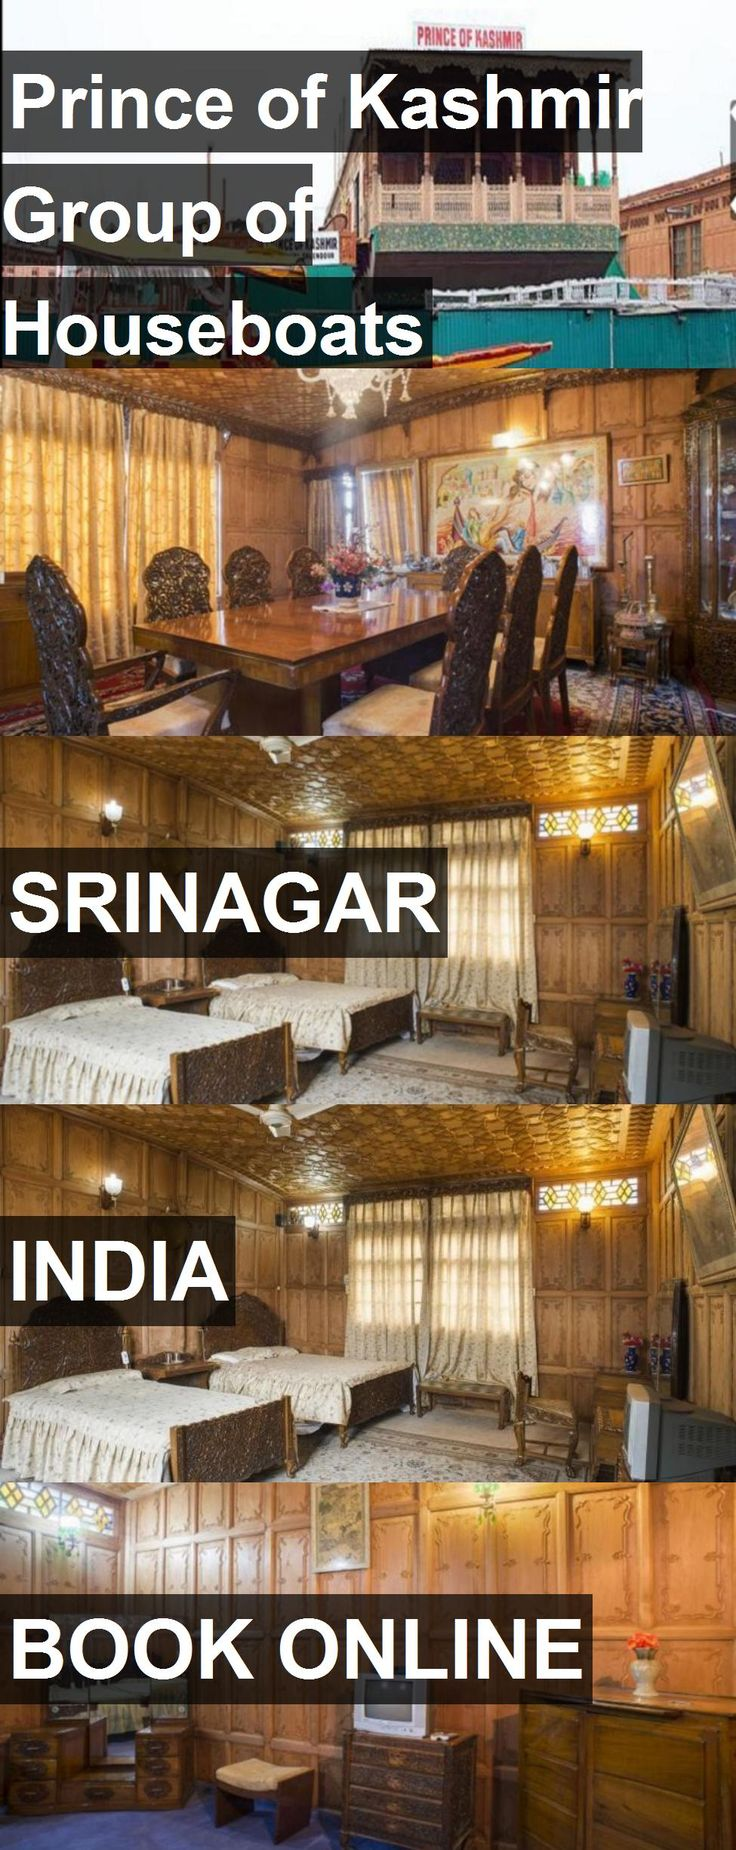 Hotel Prince of Kashmir Group of Houseboats in Srinagar, India. For more information, photos, reviews and best prices please follow the link. #India #Srinagar #PrinceofKashmirGroupofHouseboats #hotel #travel #vacation